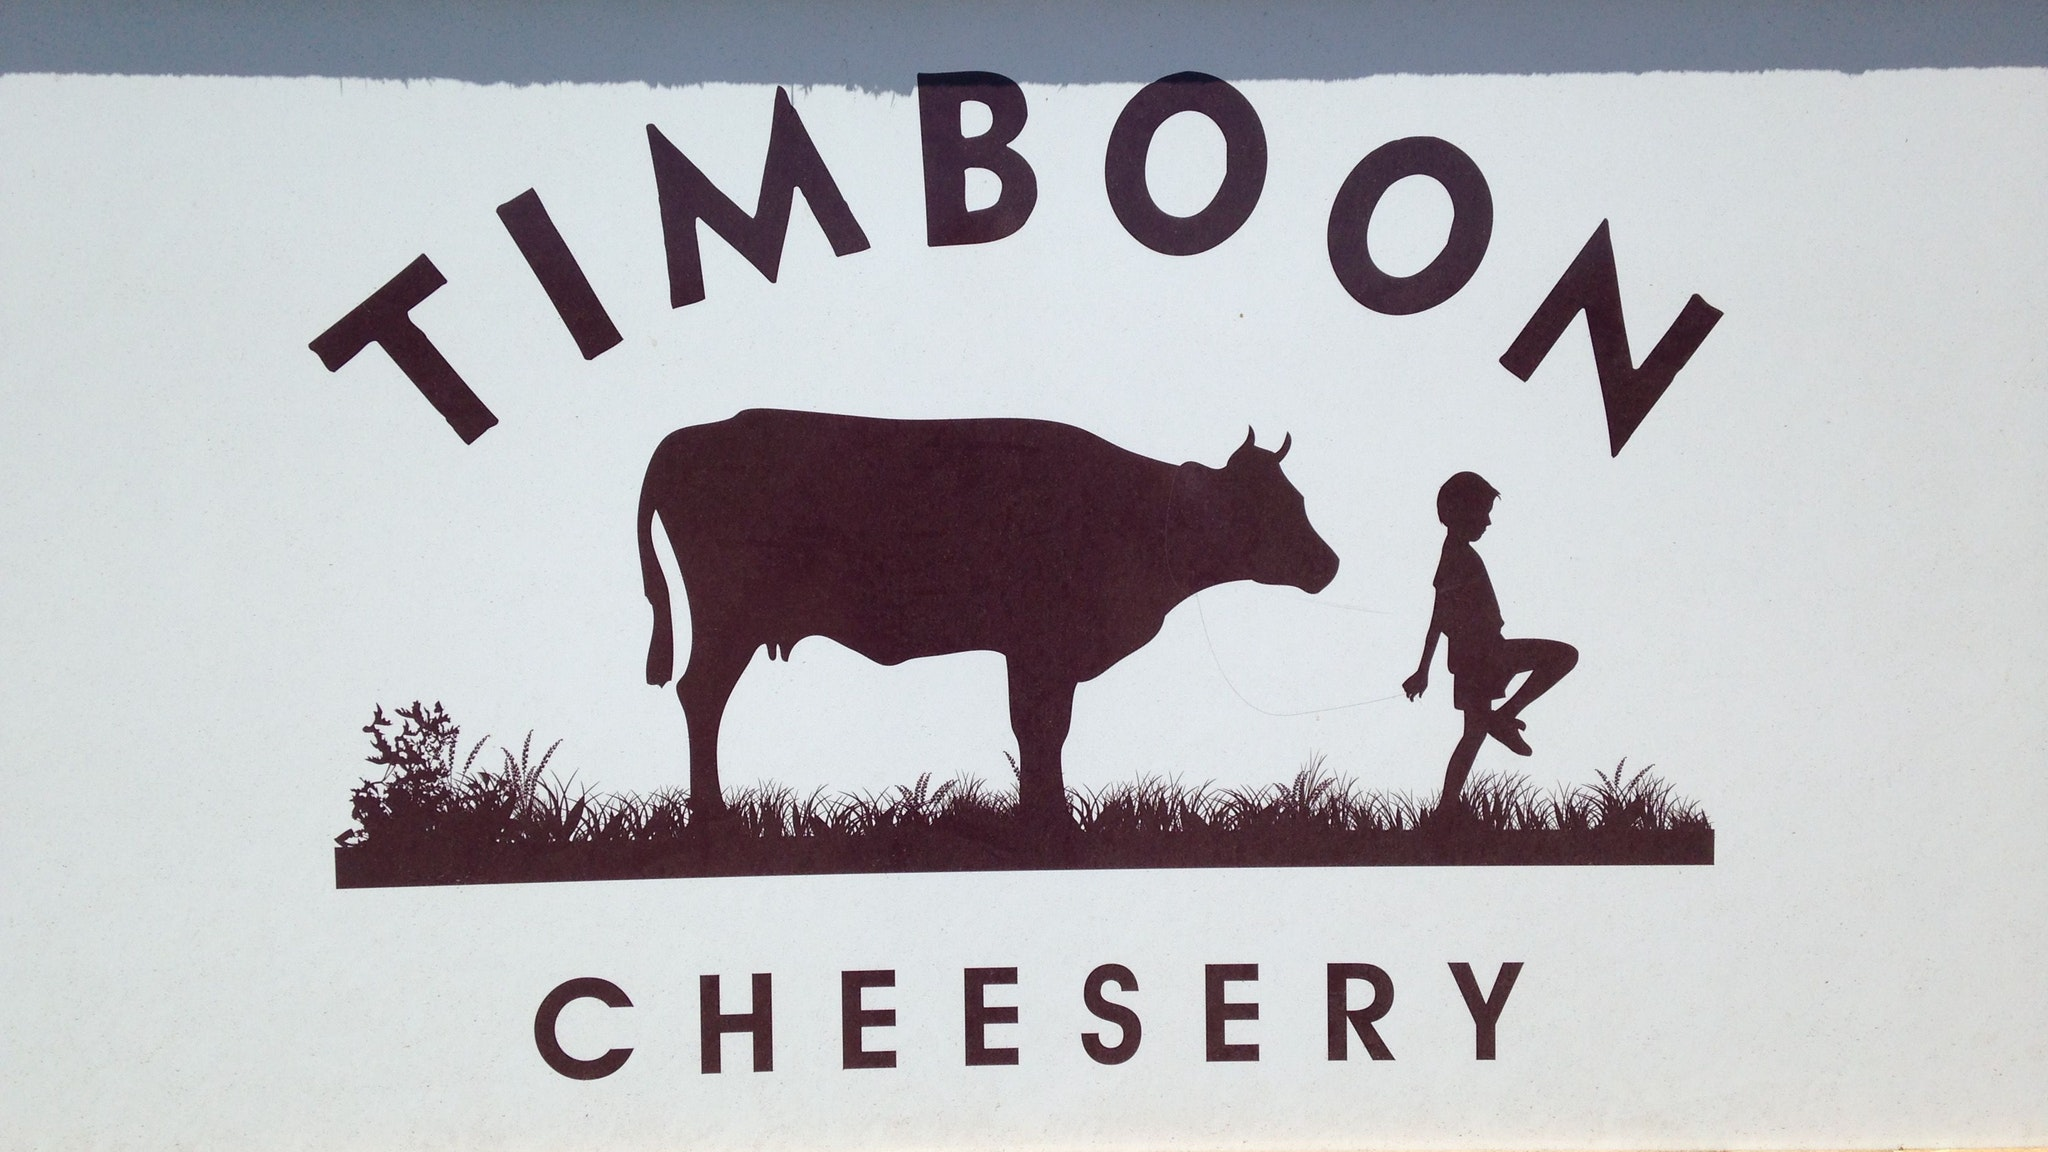 Timboon Cheesery